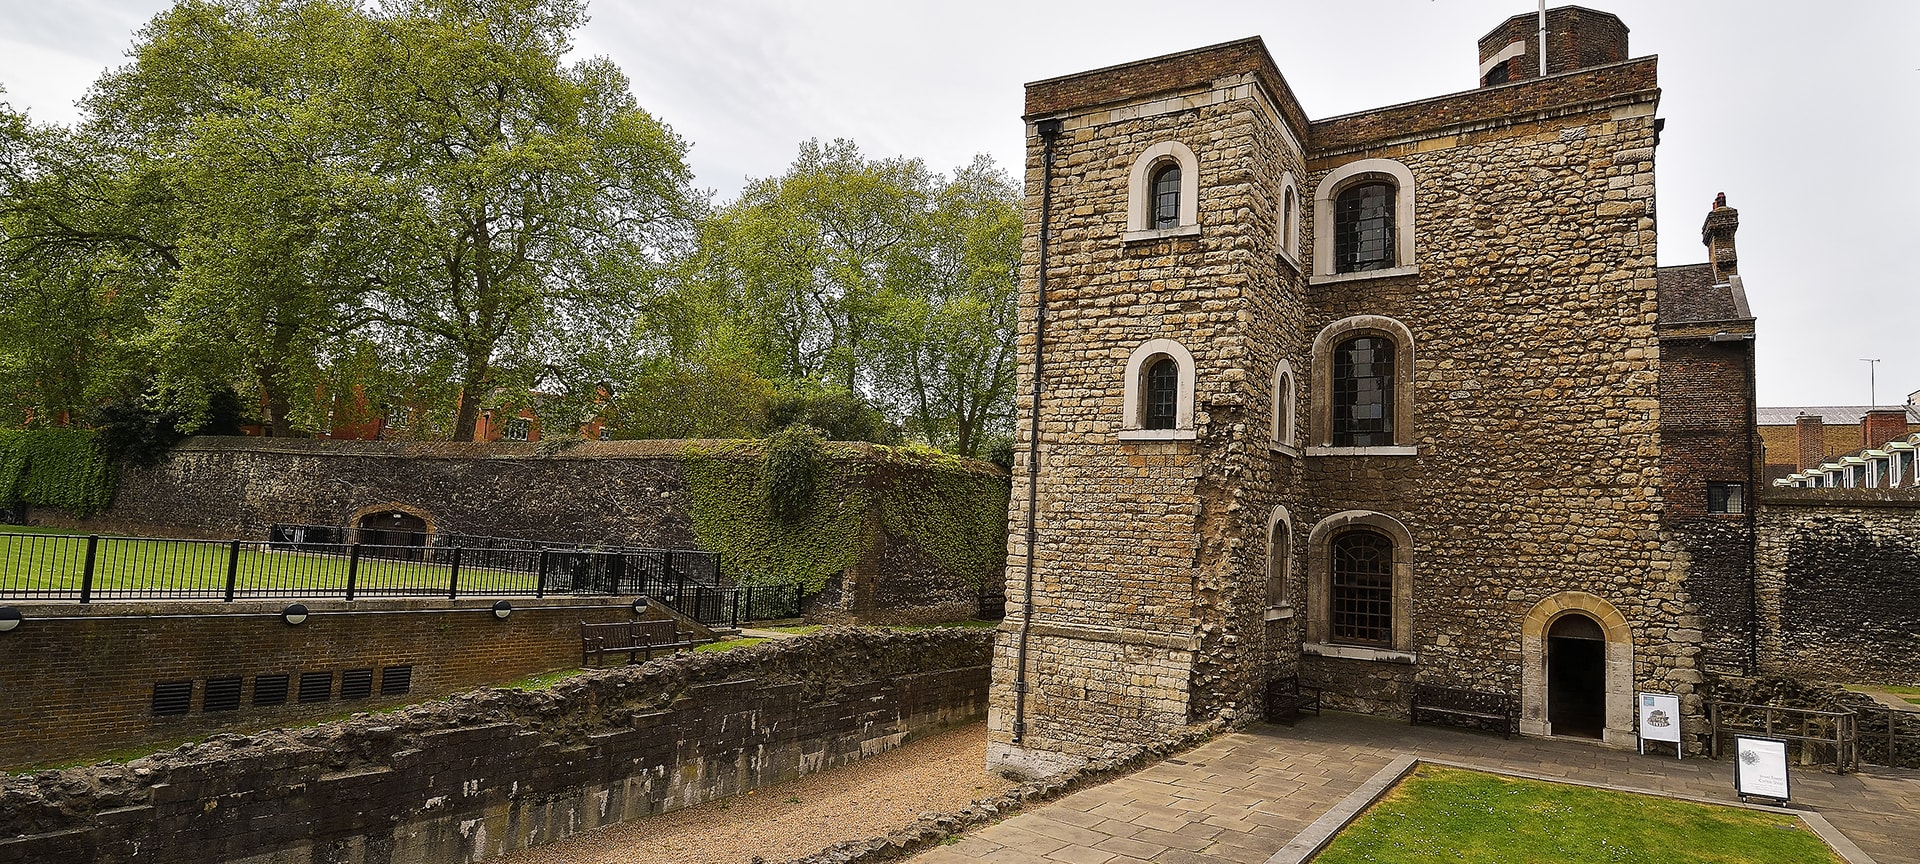 Before they moved to their current home at the Tower of London, the Crown Jewels were housed in the Jewel Tower. The tower is one of only two parts of the original Palace of Westminster, which burned down in 1512. It also survived a second fire in 1834 and bombing in the Second World War, so it was definitely built to last.